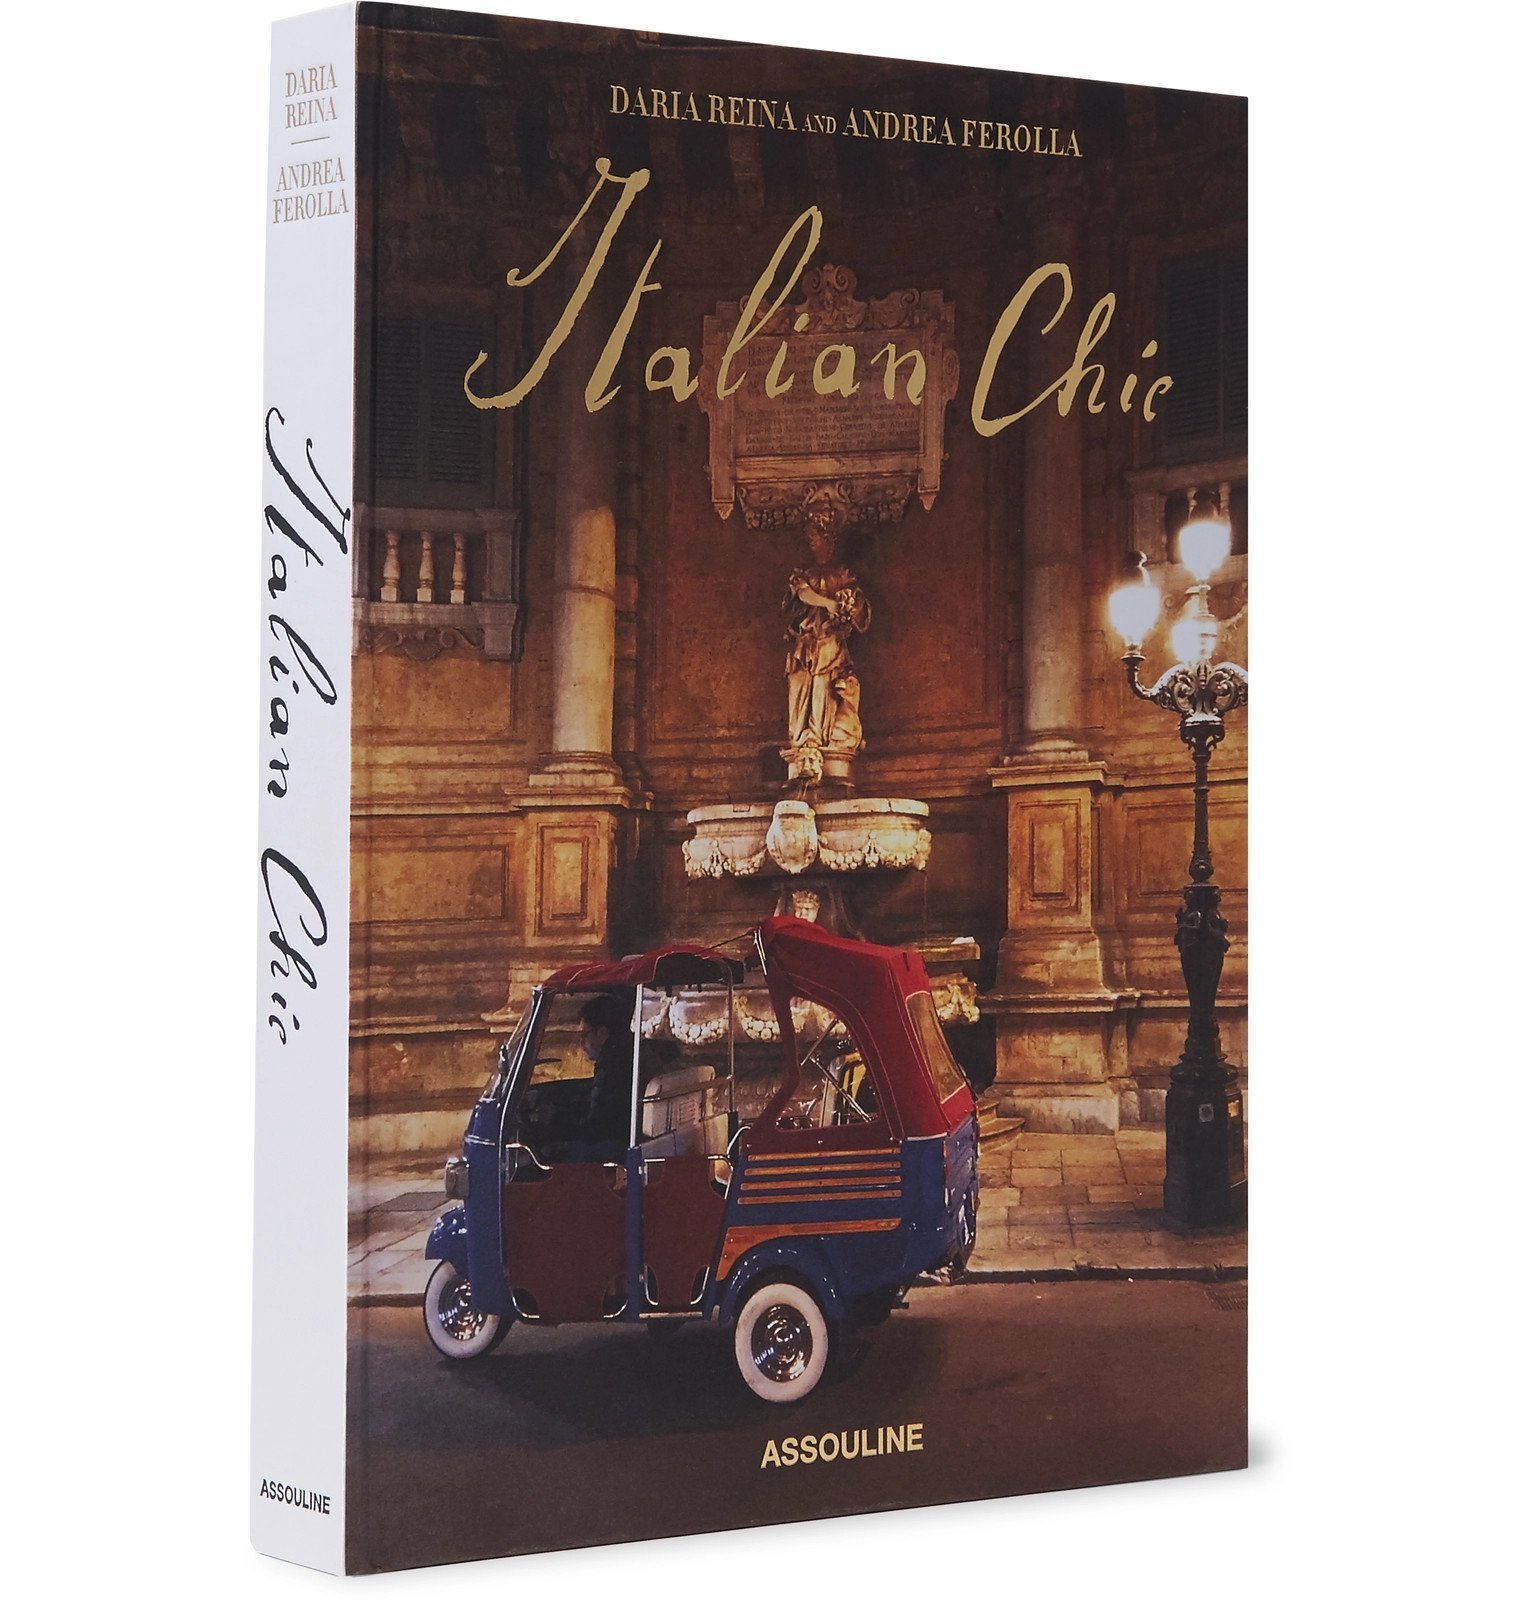 Photo: Assouline - Italian Chic Hardcover Book - Multi